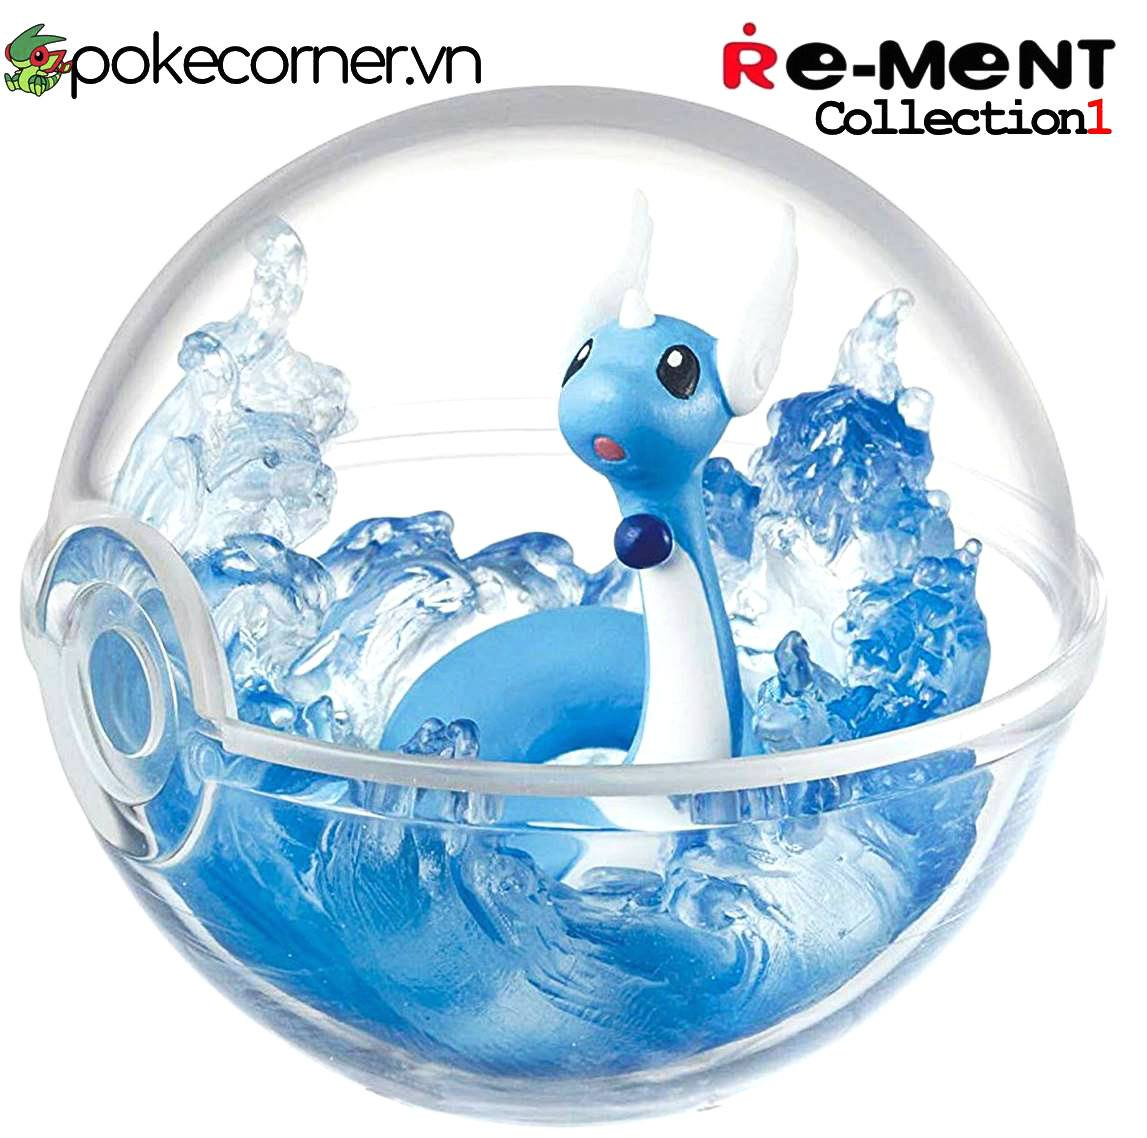 Quả Cầu Pokémon Re-Ment Pokémon Terrarium Collection 1 - Dragonair